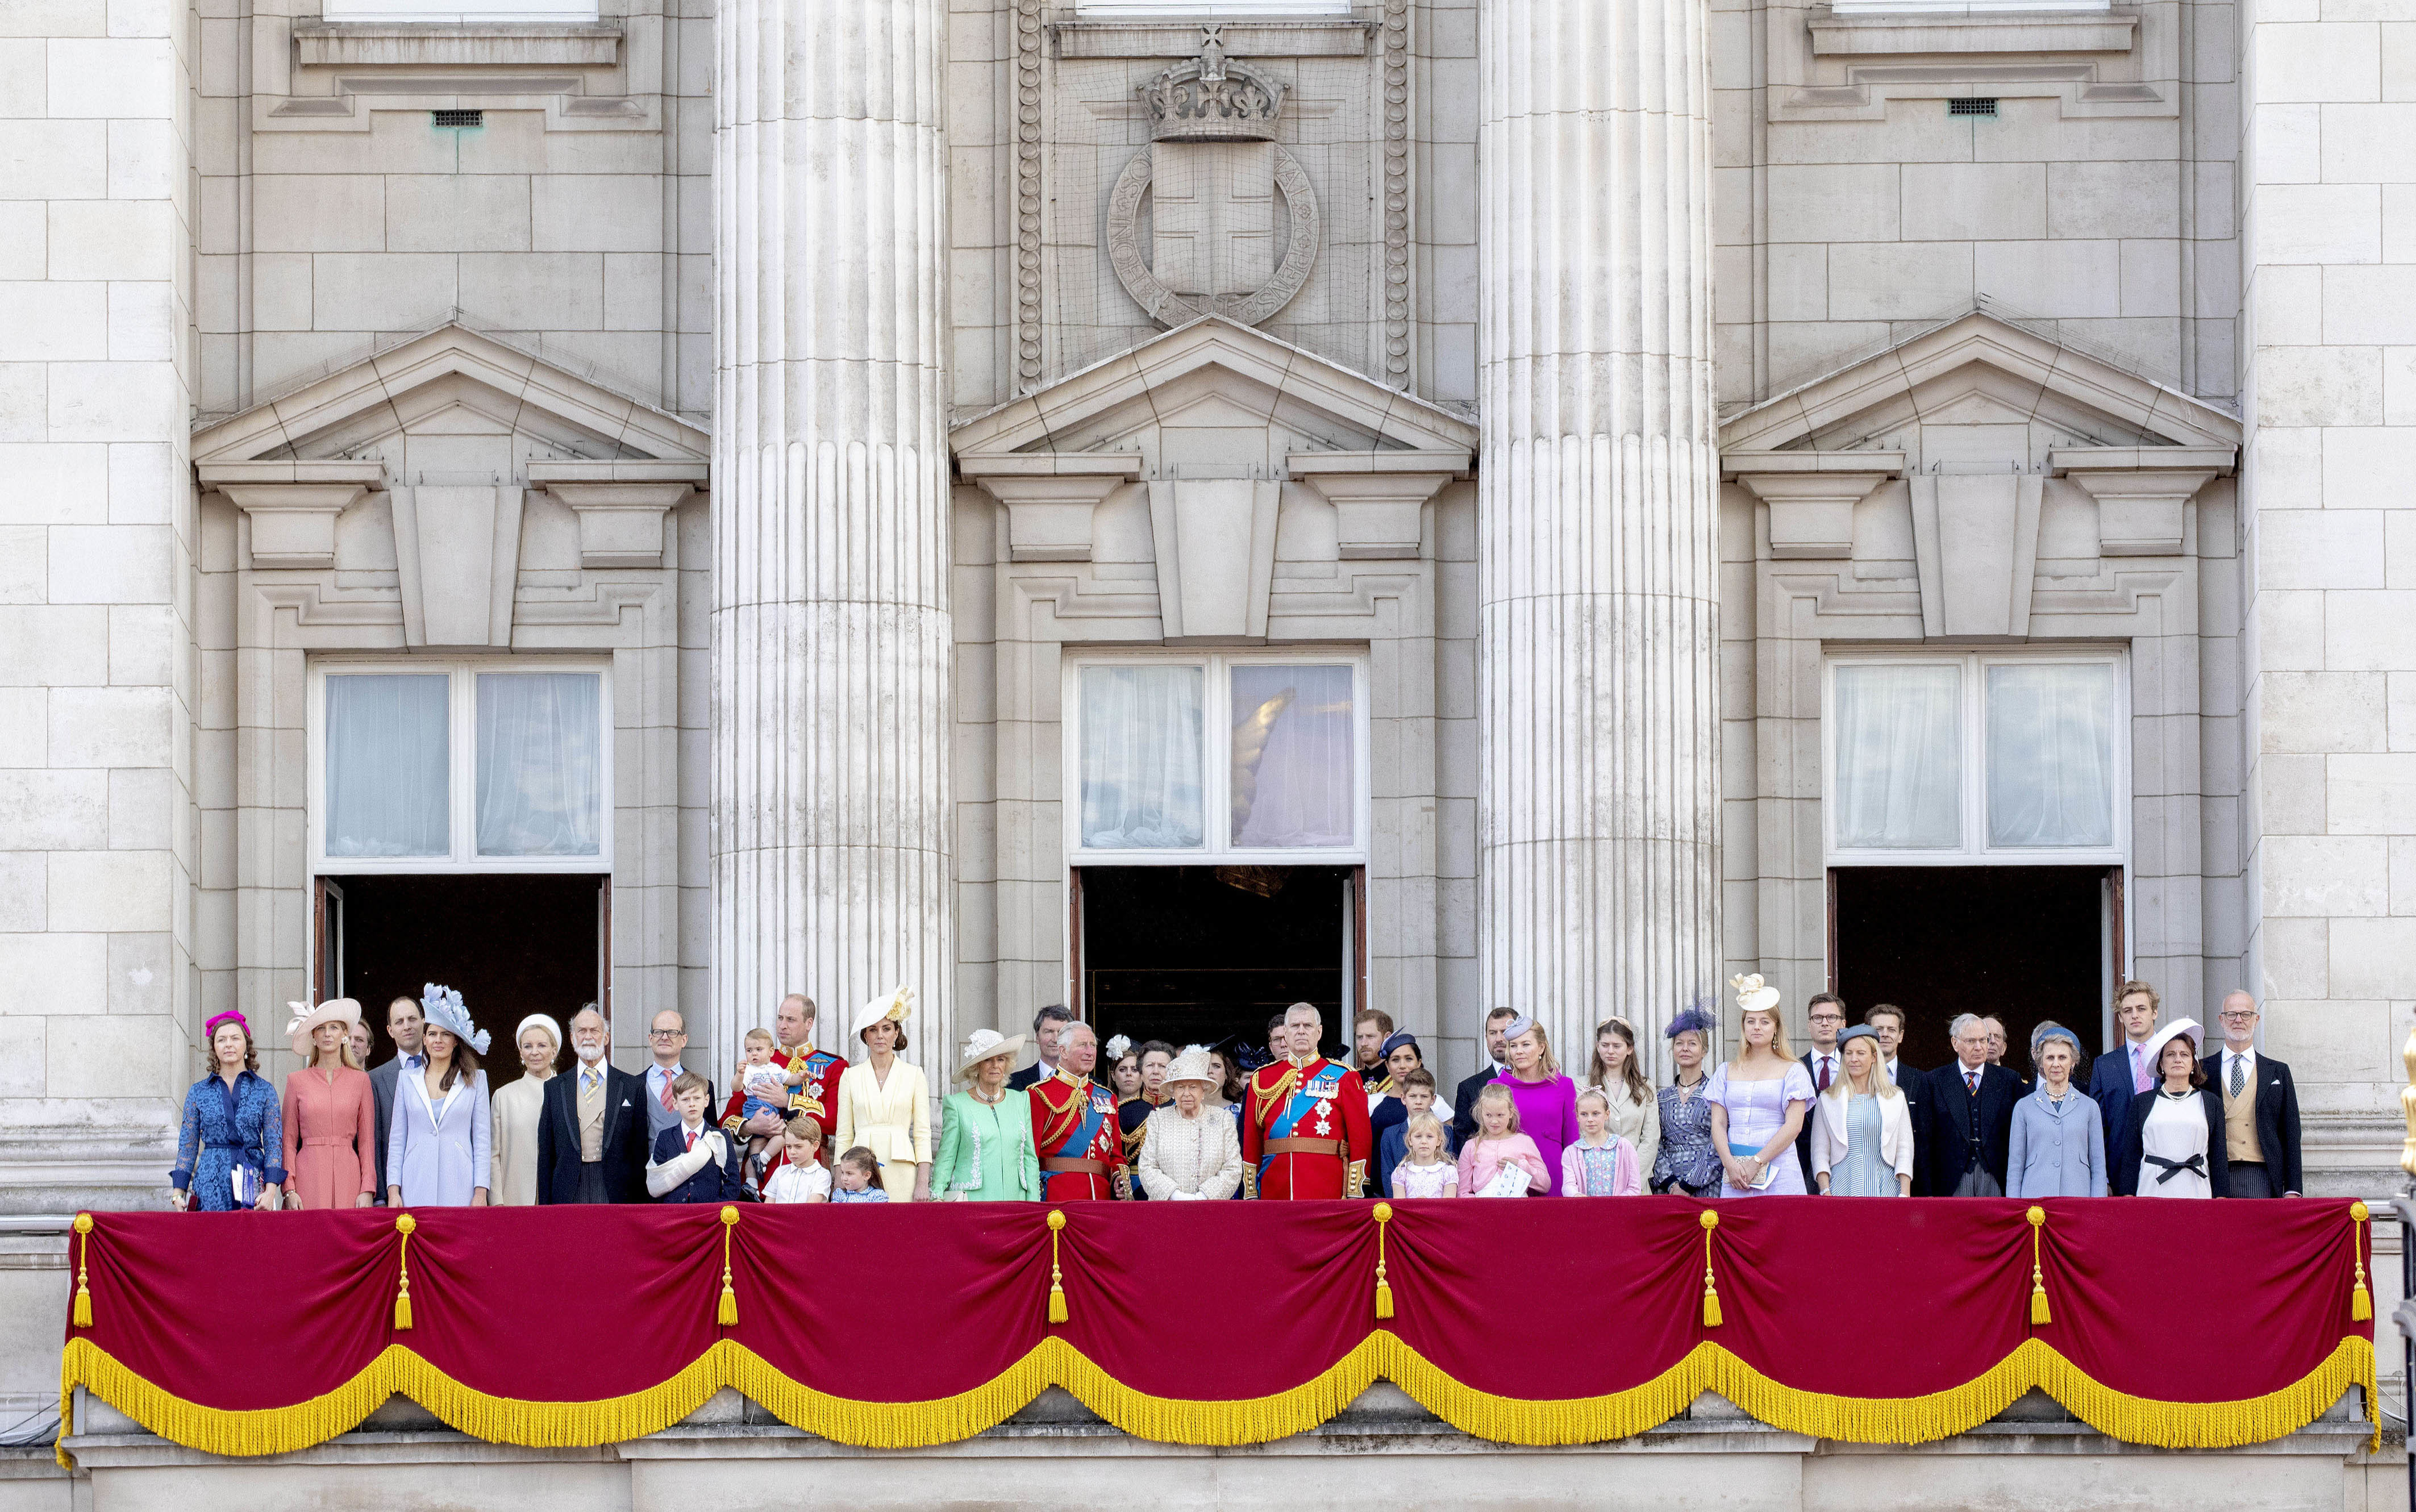 08-06-2019 England The ceremony of the Trooping the Colour, marking the monarch's official birthday, in London. Prince William, Prince Louis, Prince George, Princess Charlotte, Catherine, Duchess of Cambridge Camilla, Duchess of Cornwall, Vice Admiral Timothy Laurence, Prince Charles, Prince of Wales Britain's Princess Beatrice of York Britain's Princess Anne, Princess Royal, Queen Elizabeth II, Princess Eugenie of York Lady Louise Windsor, Prince Andrew, Duke of York Prince Harry, Duke of Sussex, Meghan, Duchess of Sussex James, Viscount Severn and Isla Phillips ( PPE/Nieboer /Sipa USA)